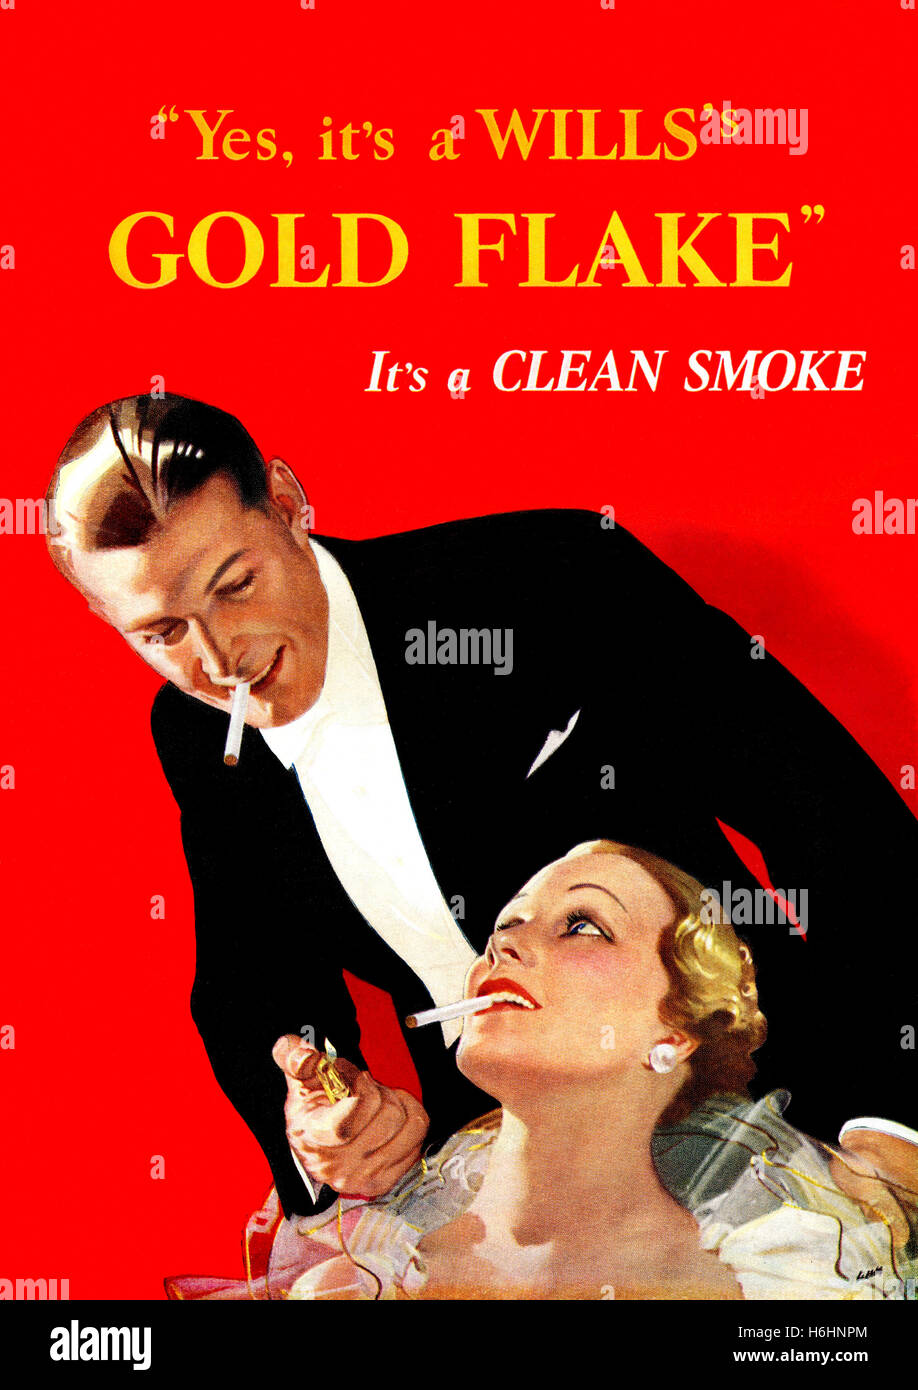 1937 British advertisement for Wills Gold Flake cigarettes - Stock Image